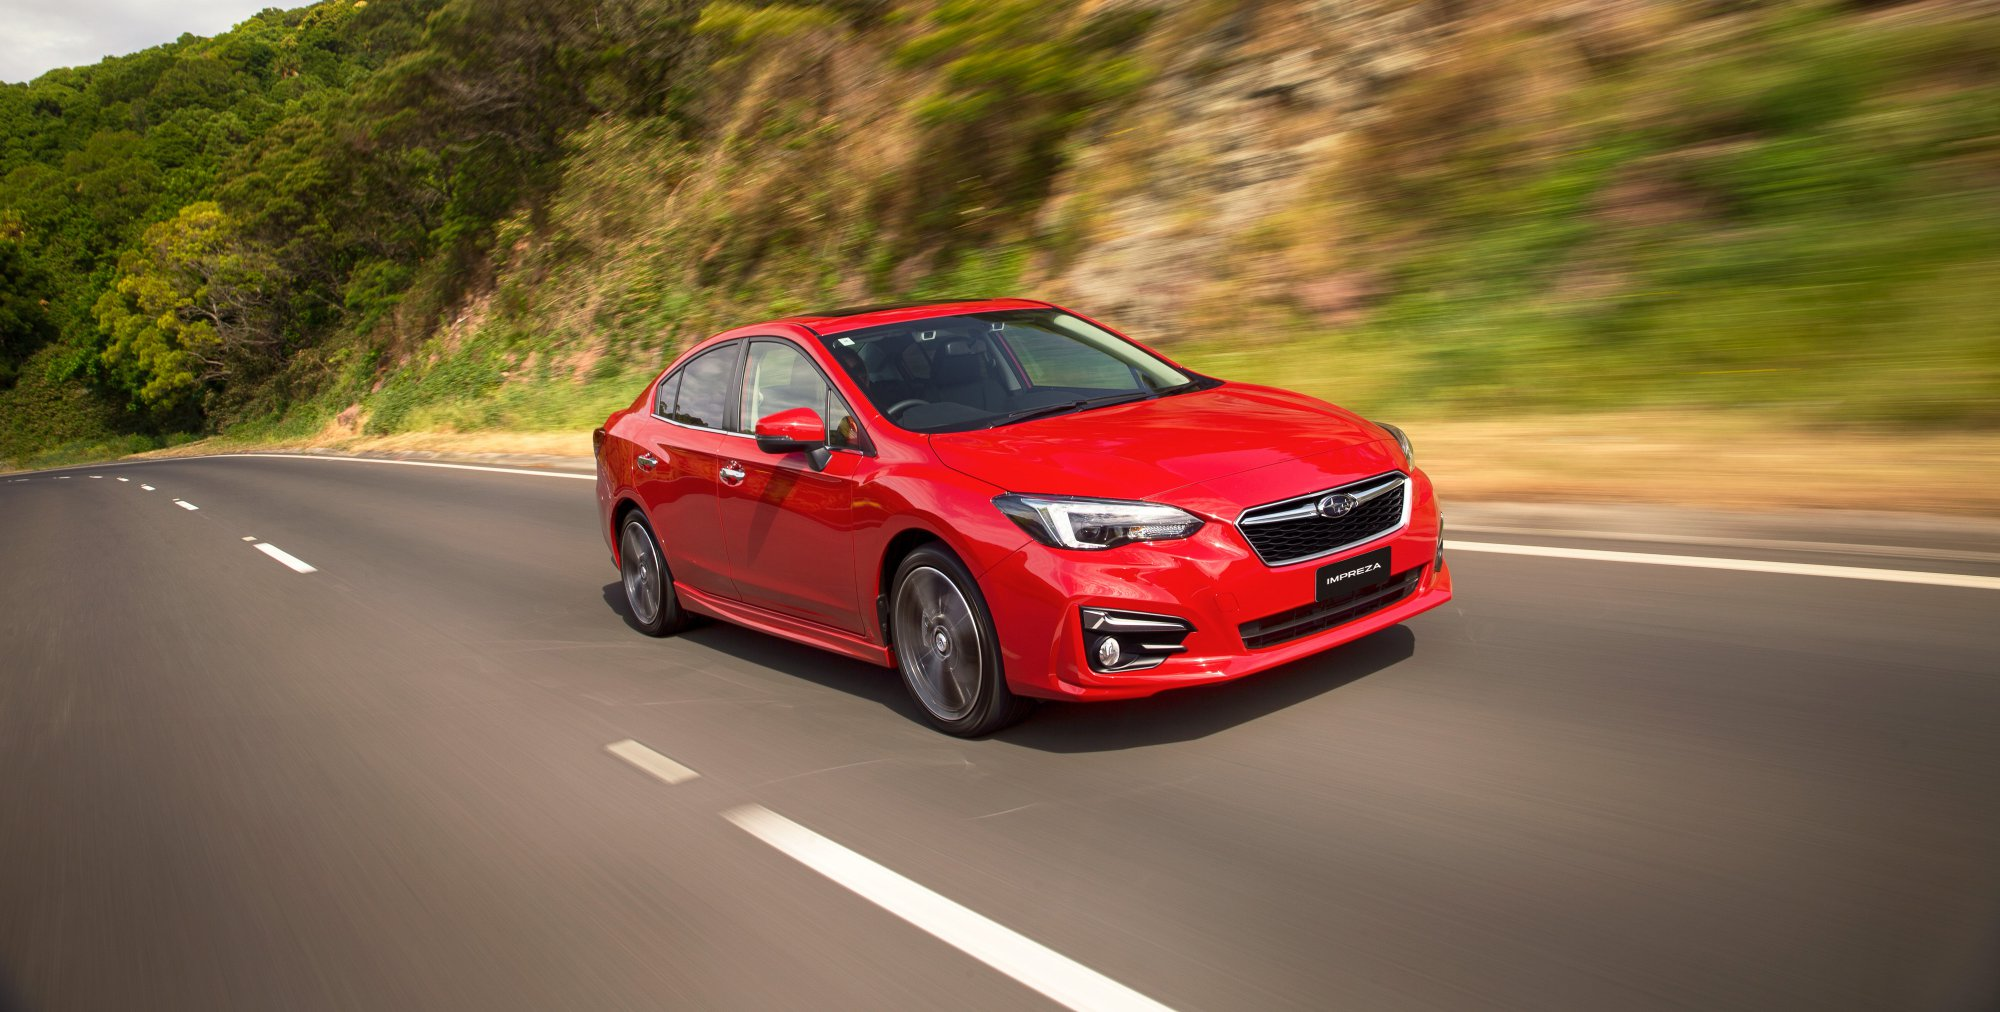 News Subaru Axes Servicing Costs 2017 Impreza To Benefit